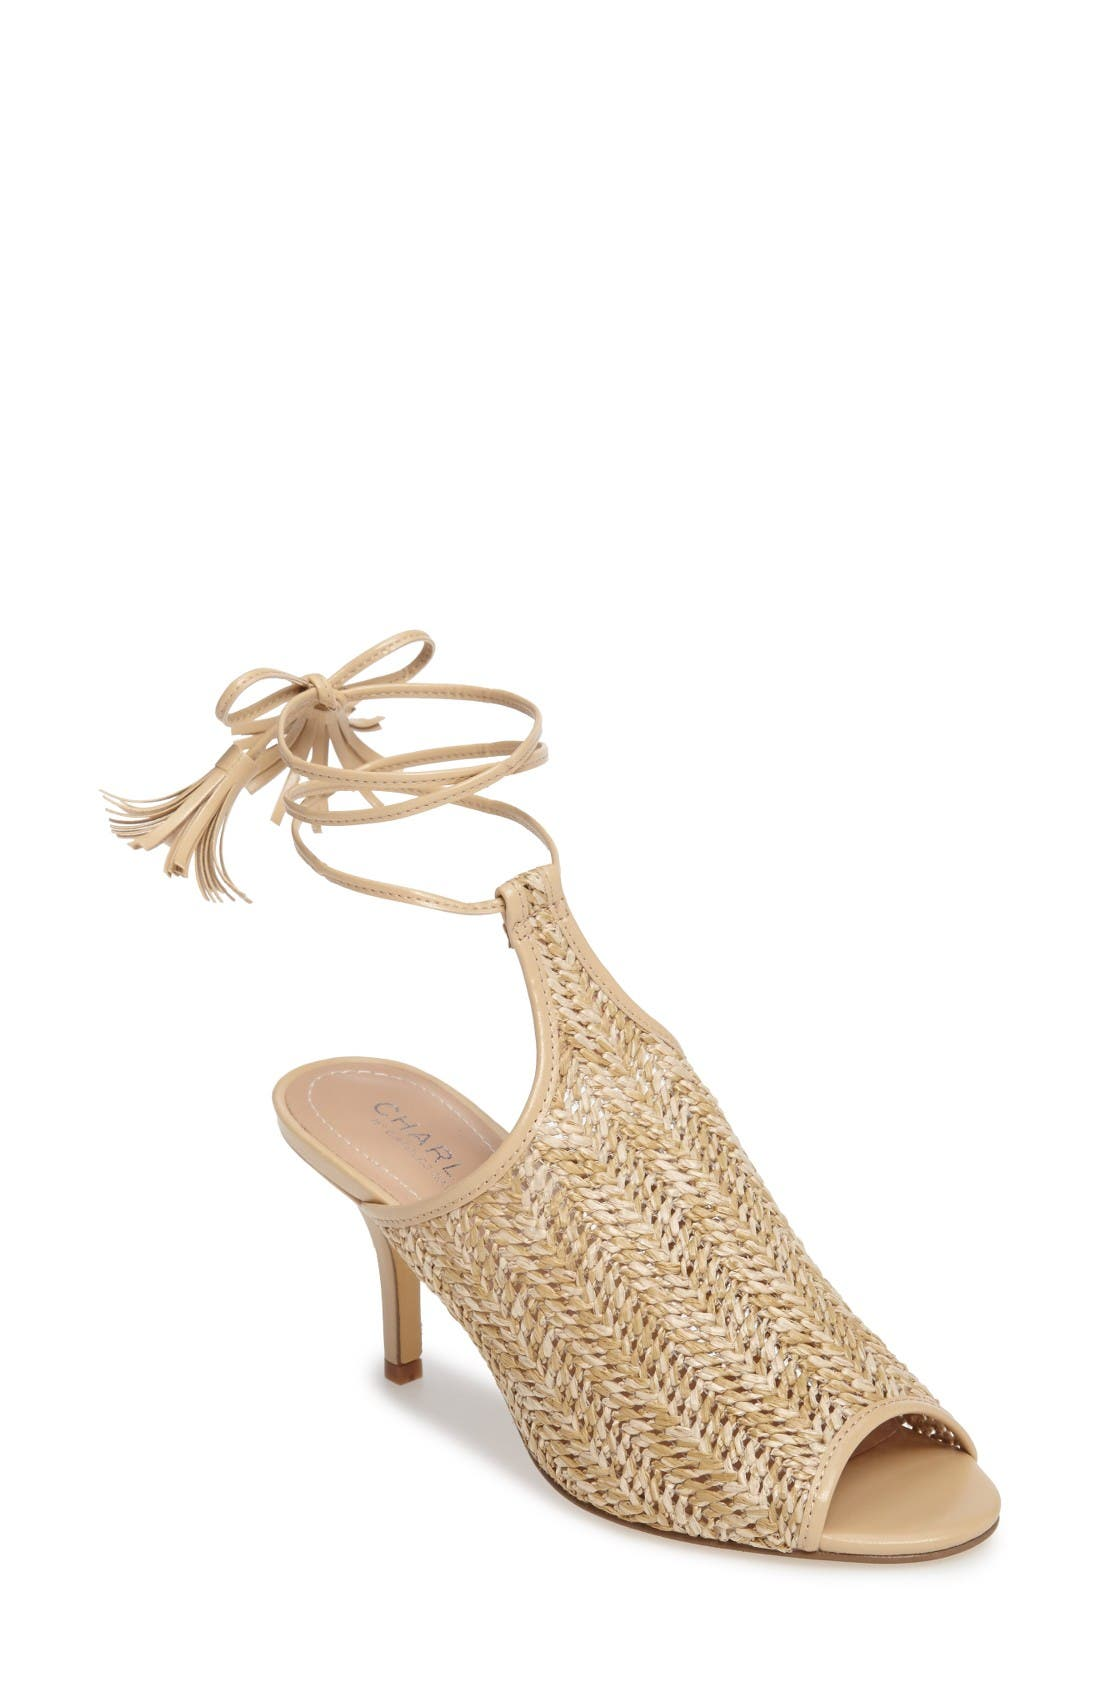 Niko Ankle Tie Sandal,                         Main,                         color, Natural Basket Woven Fabric